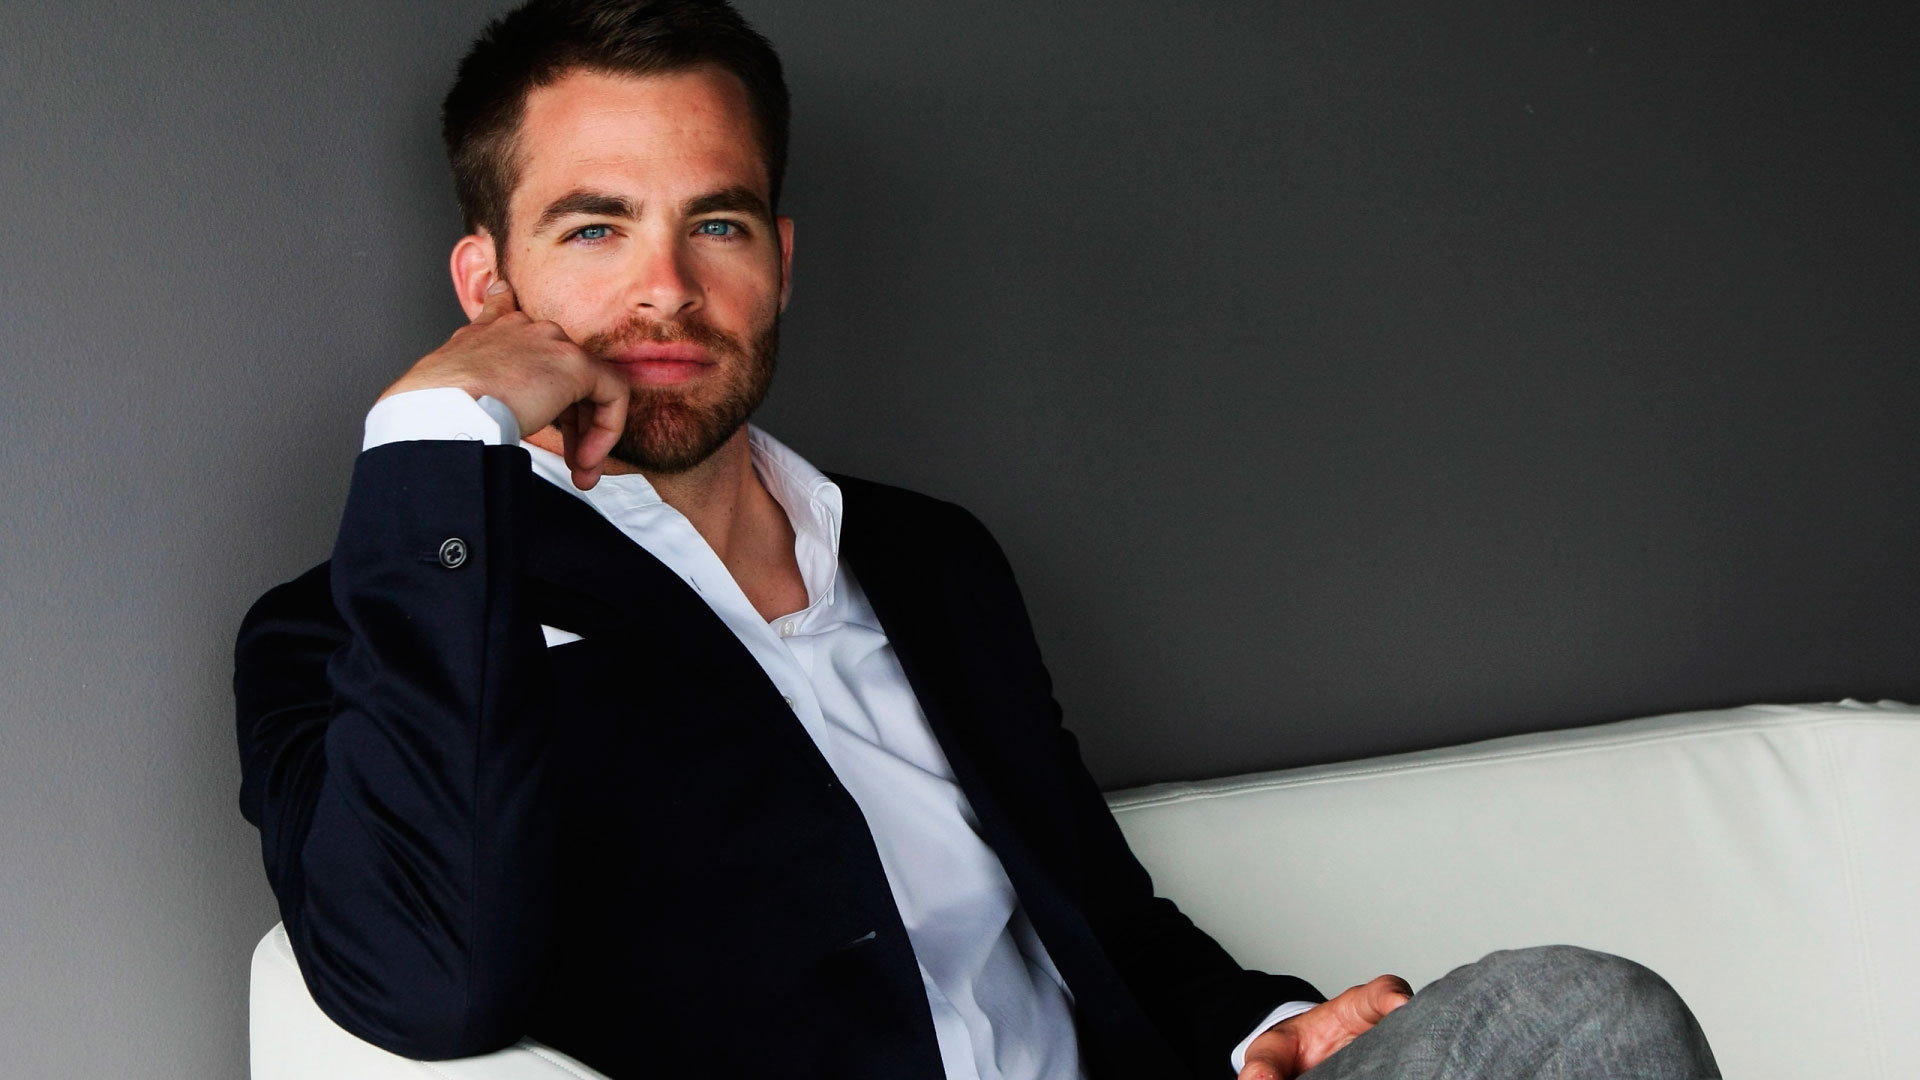 Chris Pine Wallpapers HD